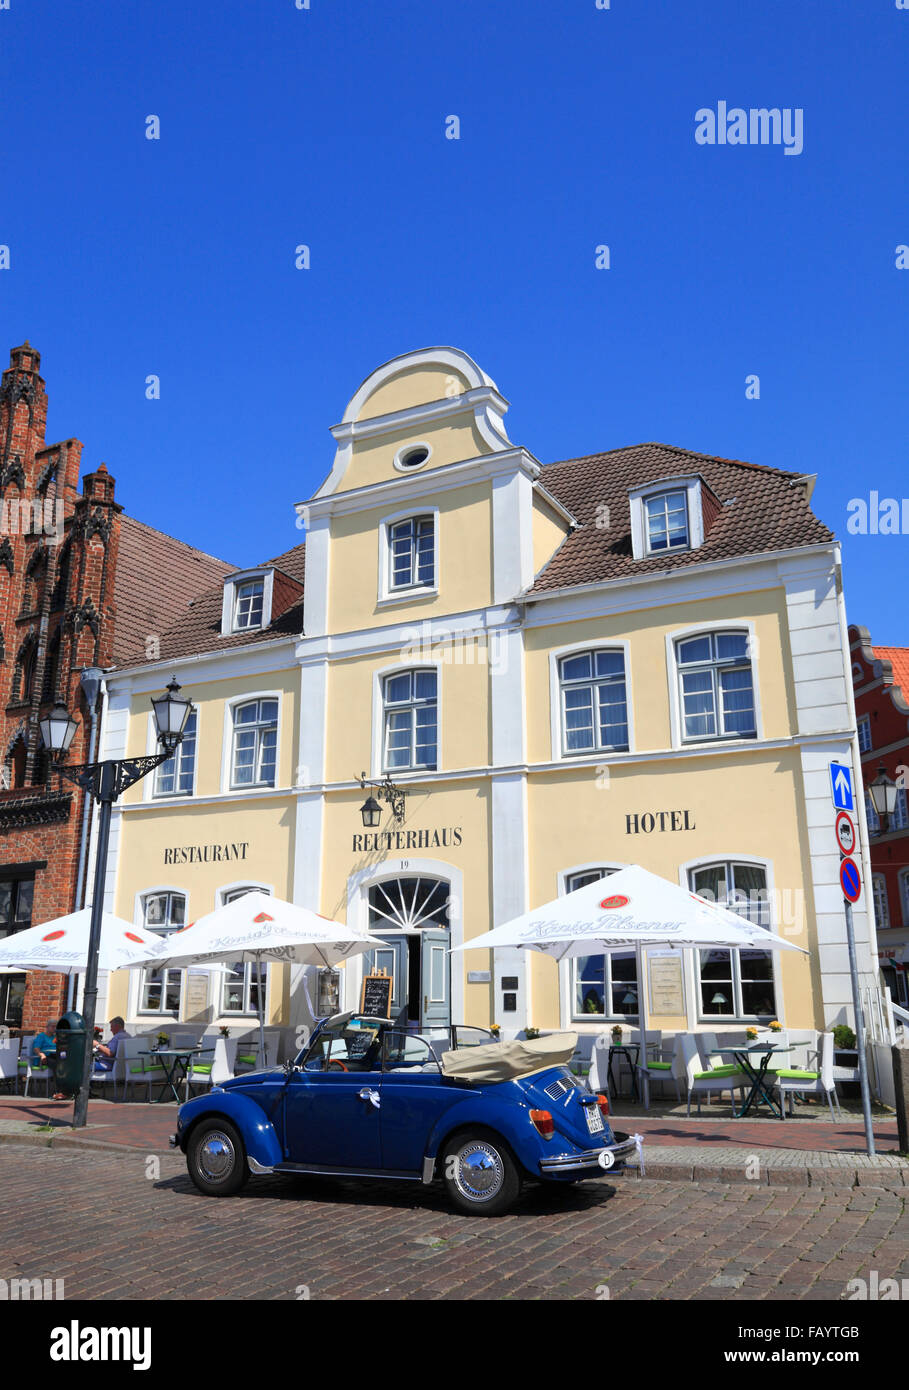 Hotel and Restaurant Reuterhaus at market square, Wismar, Baltic Sea, Mecklenburg Western Pomerania, Germany, Europe - Stock Image